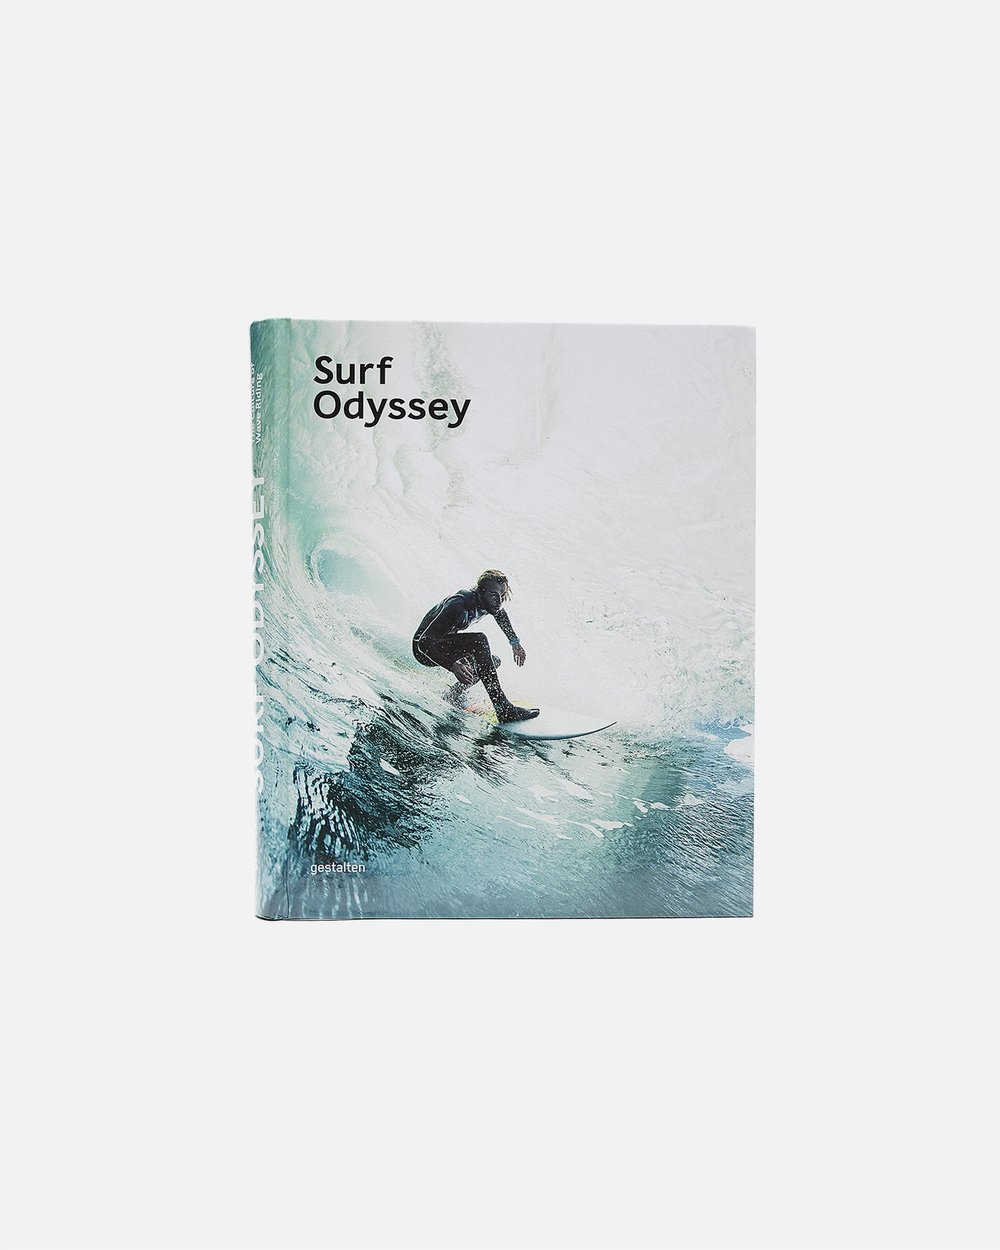 FOR THE SERIOUS SURFER - $55 - Get transported to a world where all that matters is the wave.Surf Odyssey documents the modern cult of surfing and the subculture that surrounds it.Find it on CURIO